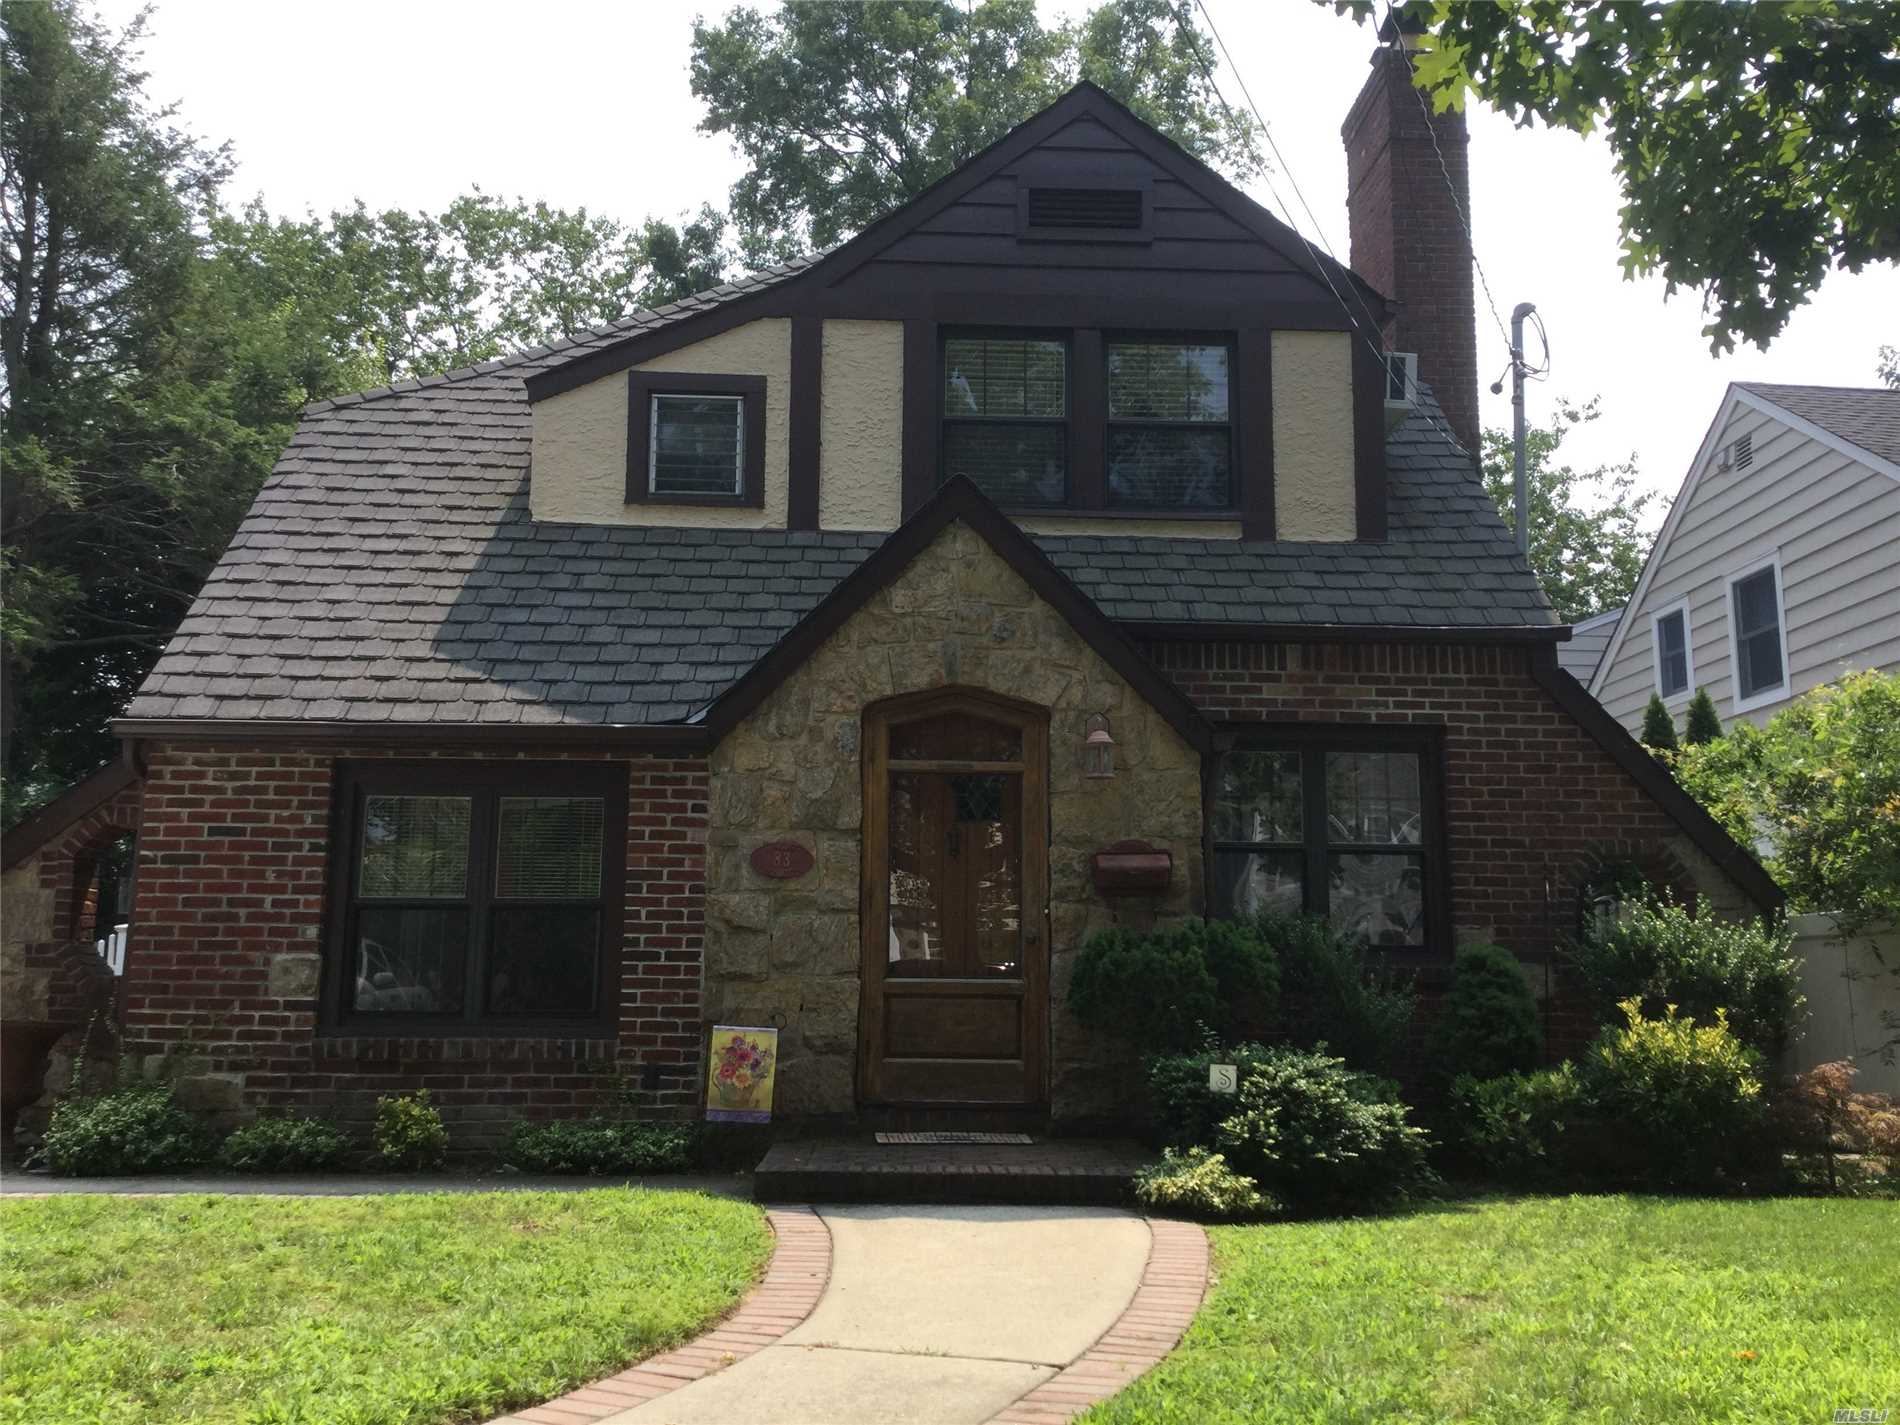 Charming Mint Tudor Colonial With Renovated And Expanded Eik, Main Floor Family Room, Lr W/ Fireplace, Radiant Heat, Bar Area, Mud Room, Hardwood Floors Throughout, Sliders From Eik To Patio And Great Fenced Yard. Beautiful Block And Great Curb Appeal. Has Steam And Gas Heat.